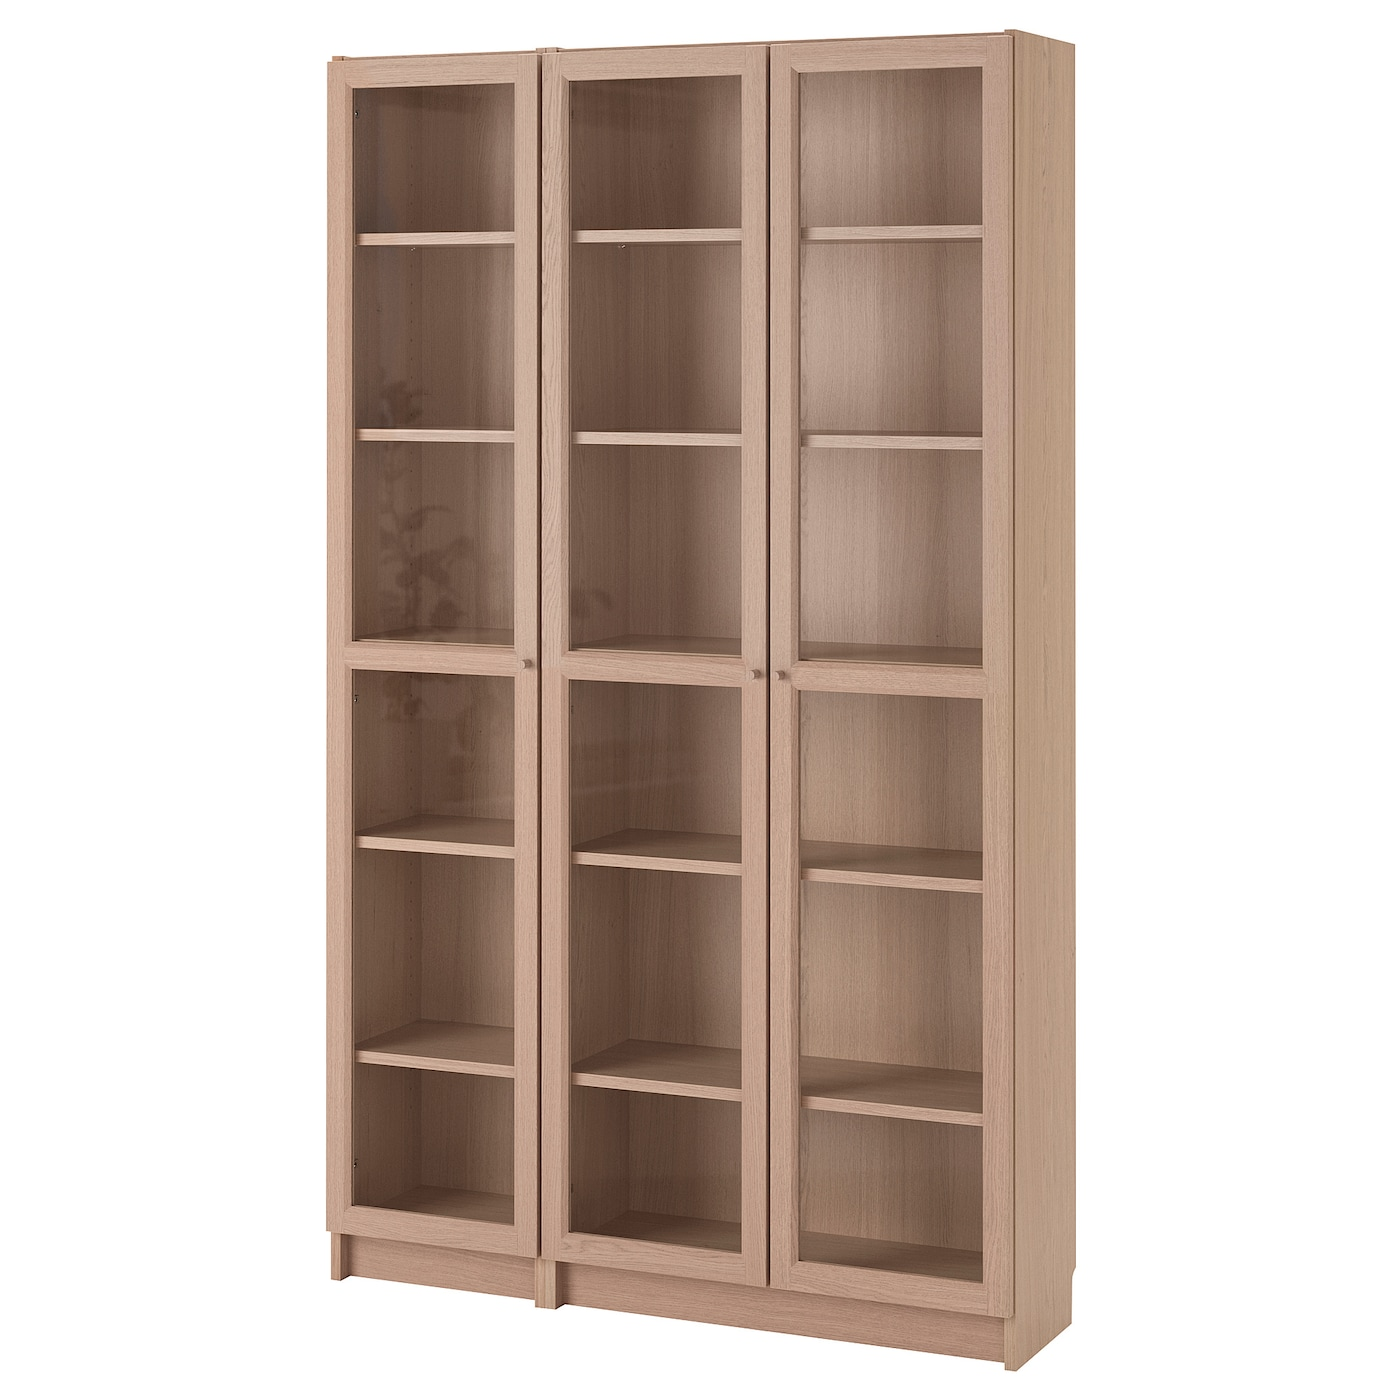 IKEA BILLY/OXBERG bookcase with glass-doors Surface made from natural wood veneer.